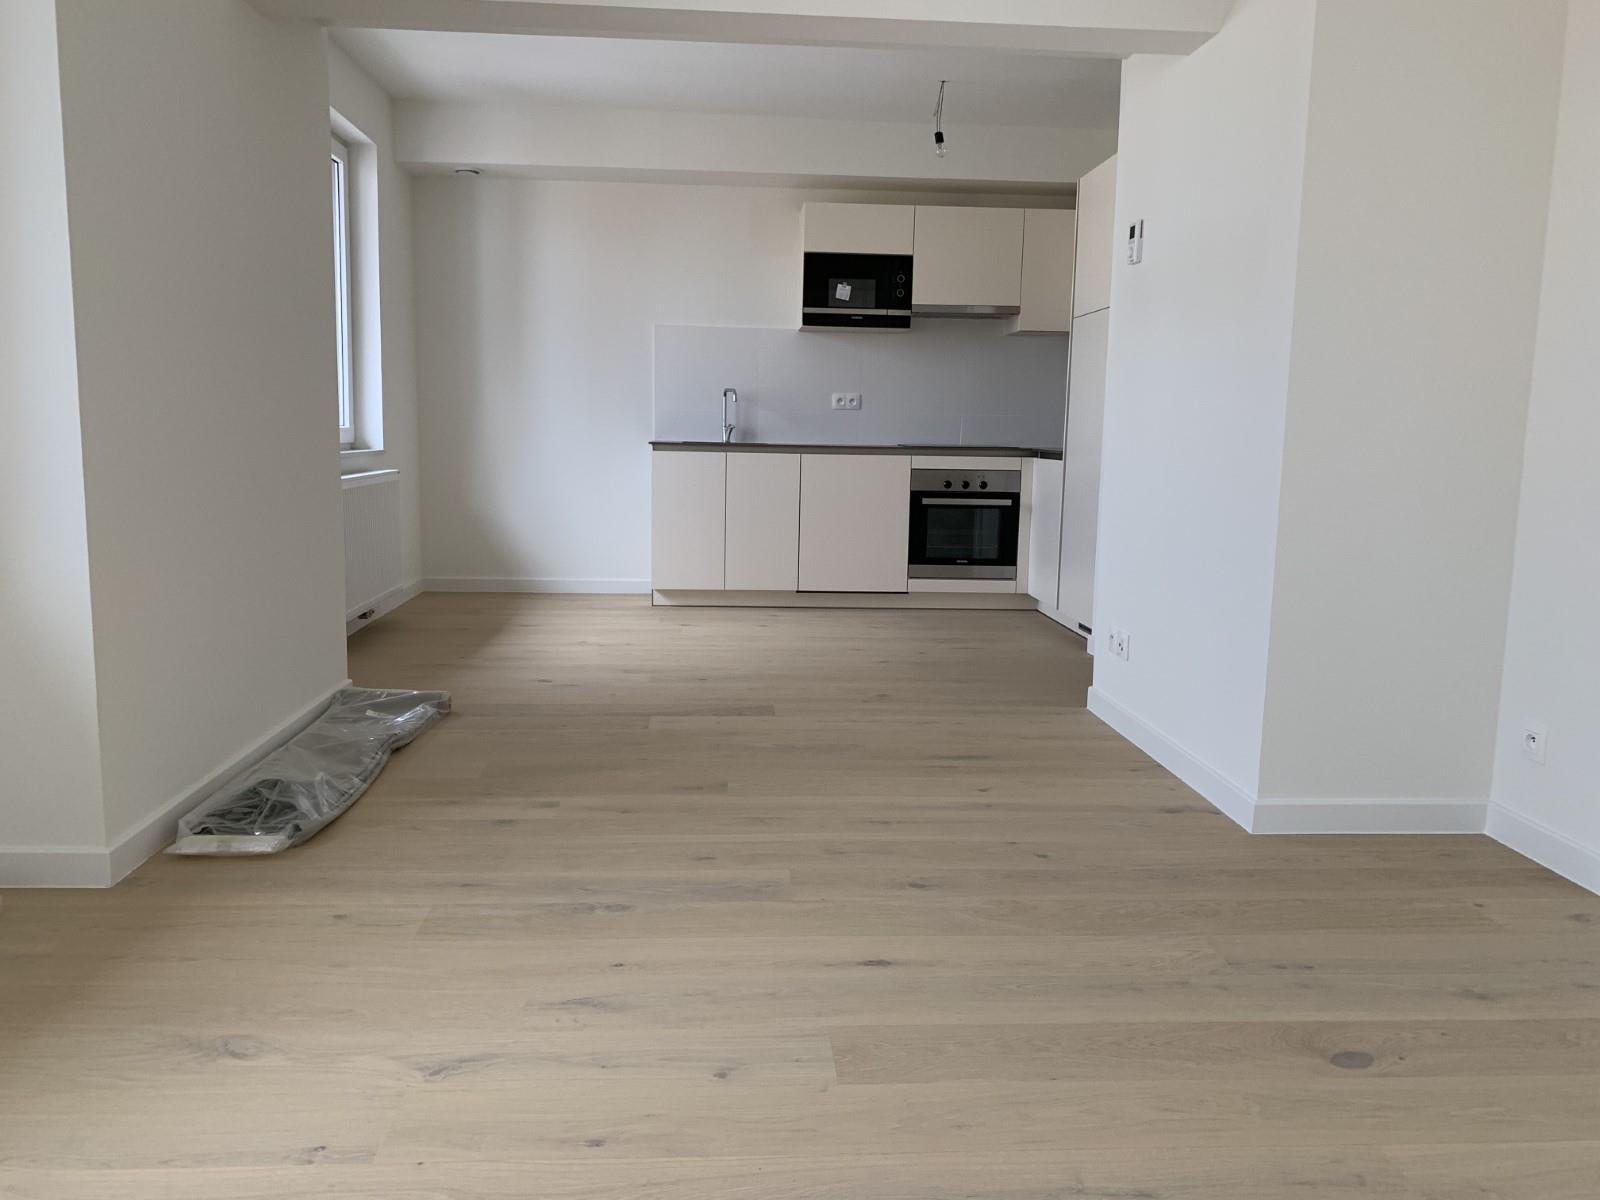 Appartement exceptionnel - Schaerbeek - #3875201-27